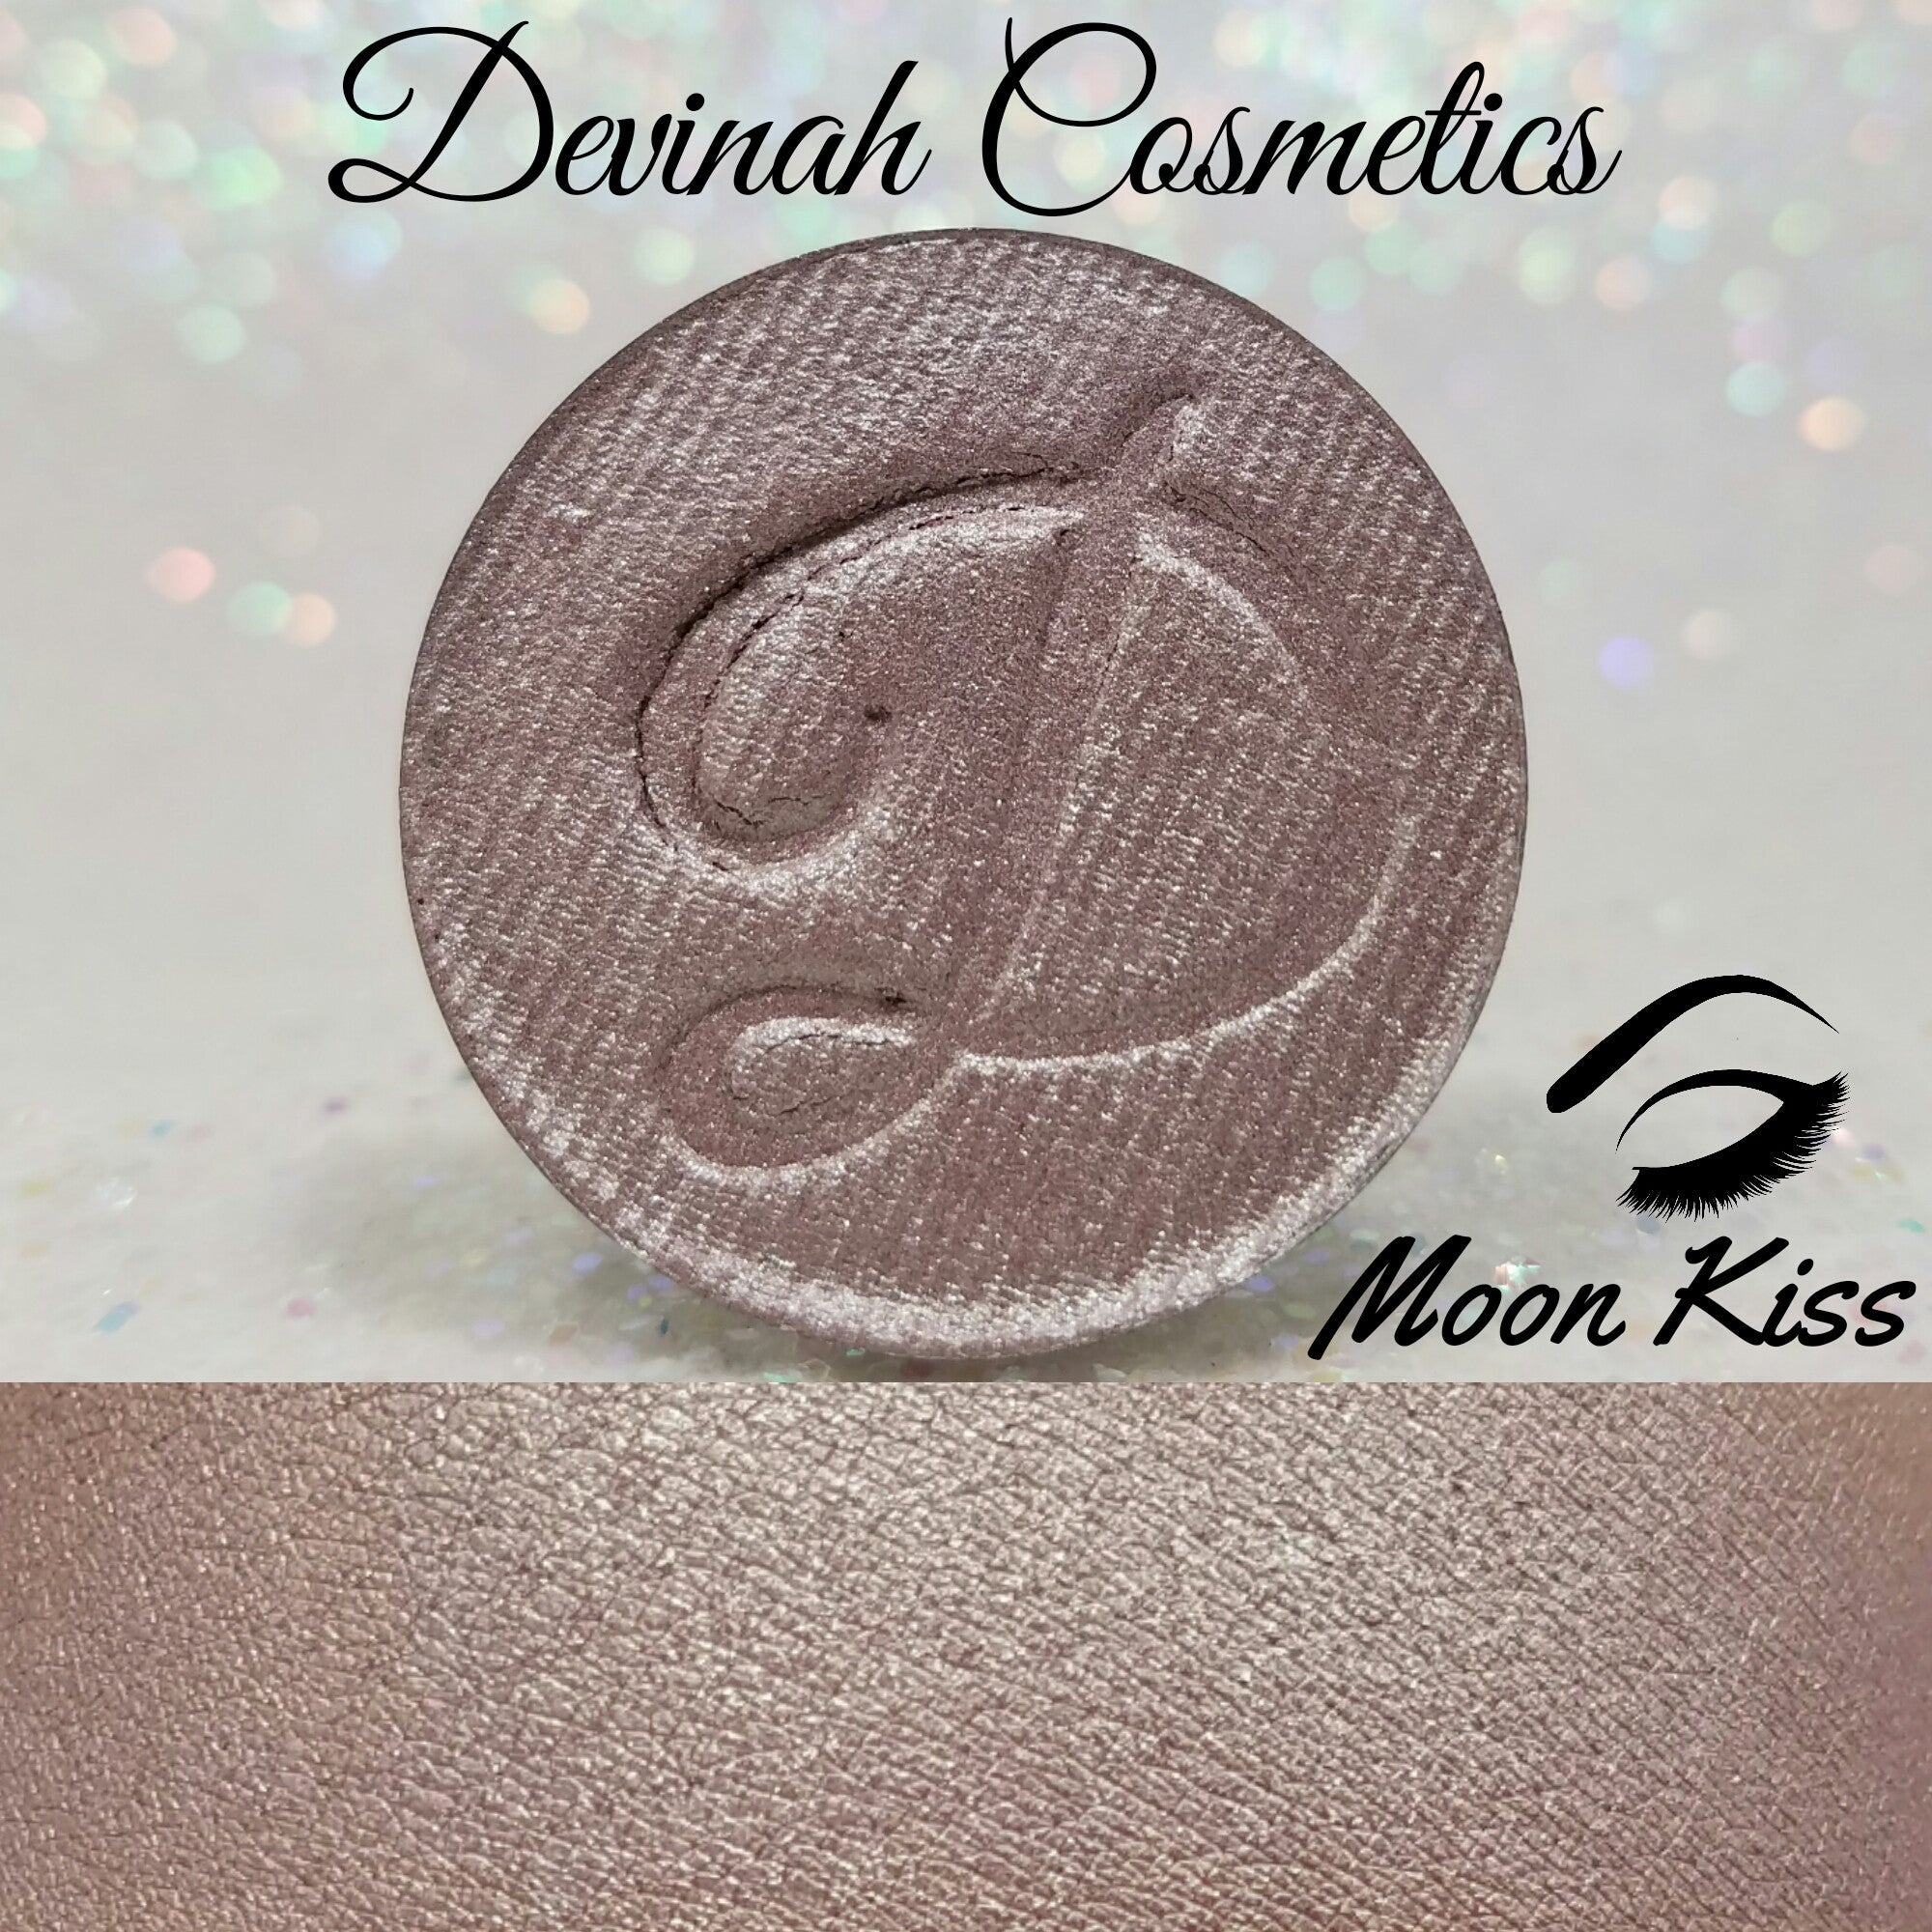 MOON KISS Face and Body Highlighter